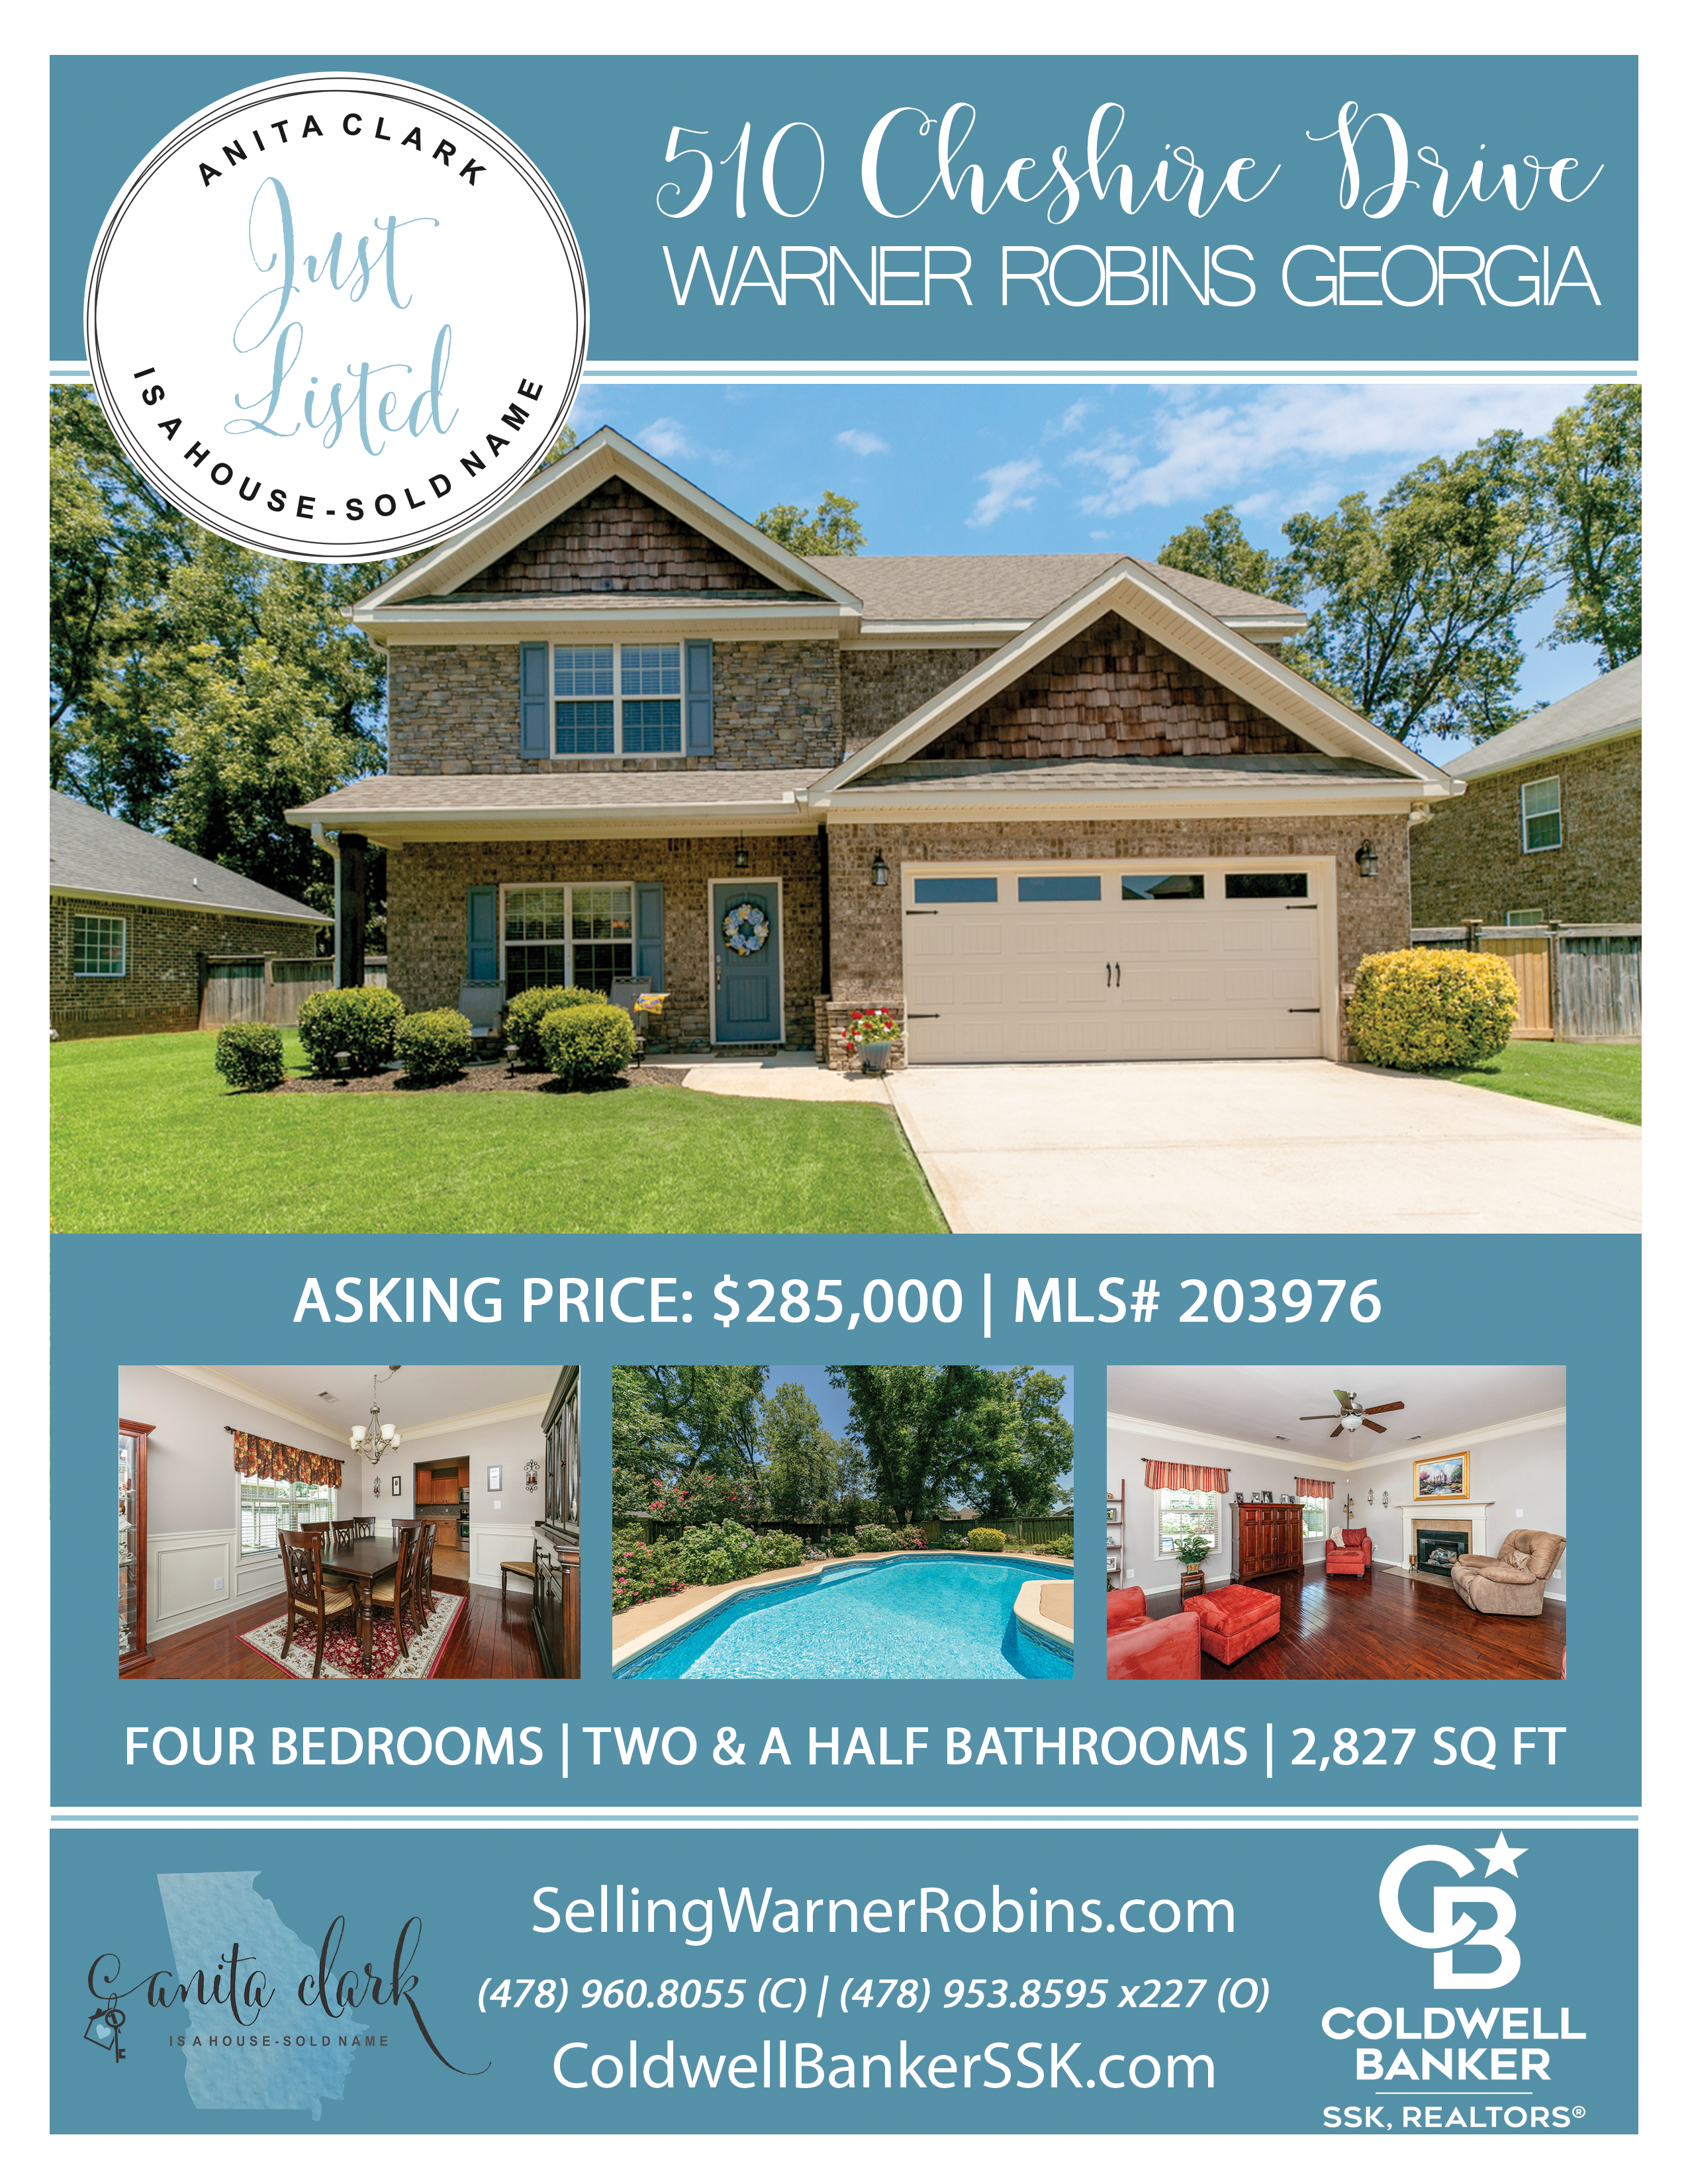 Just Listed in Kensington Subdivision